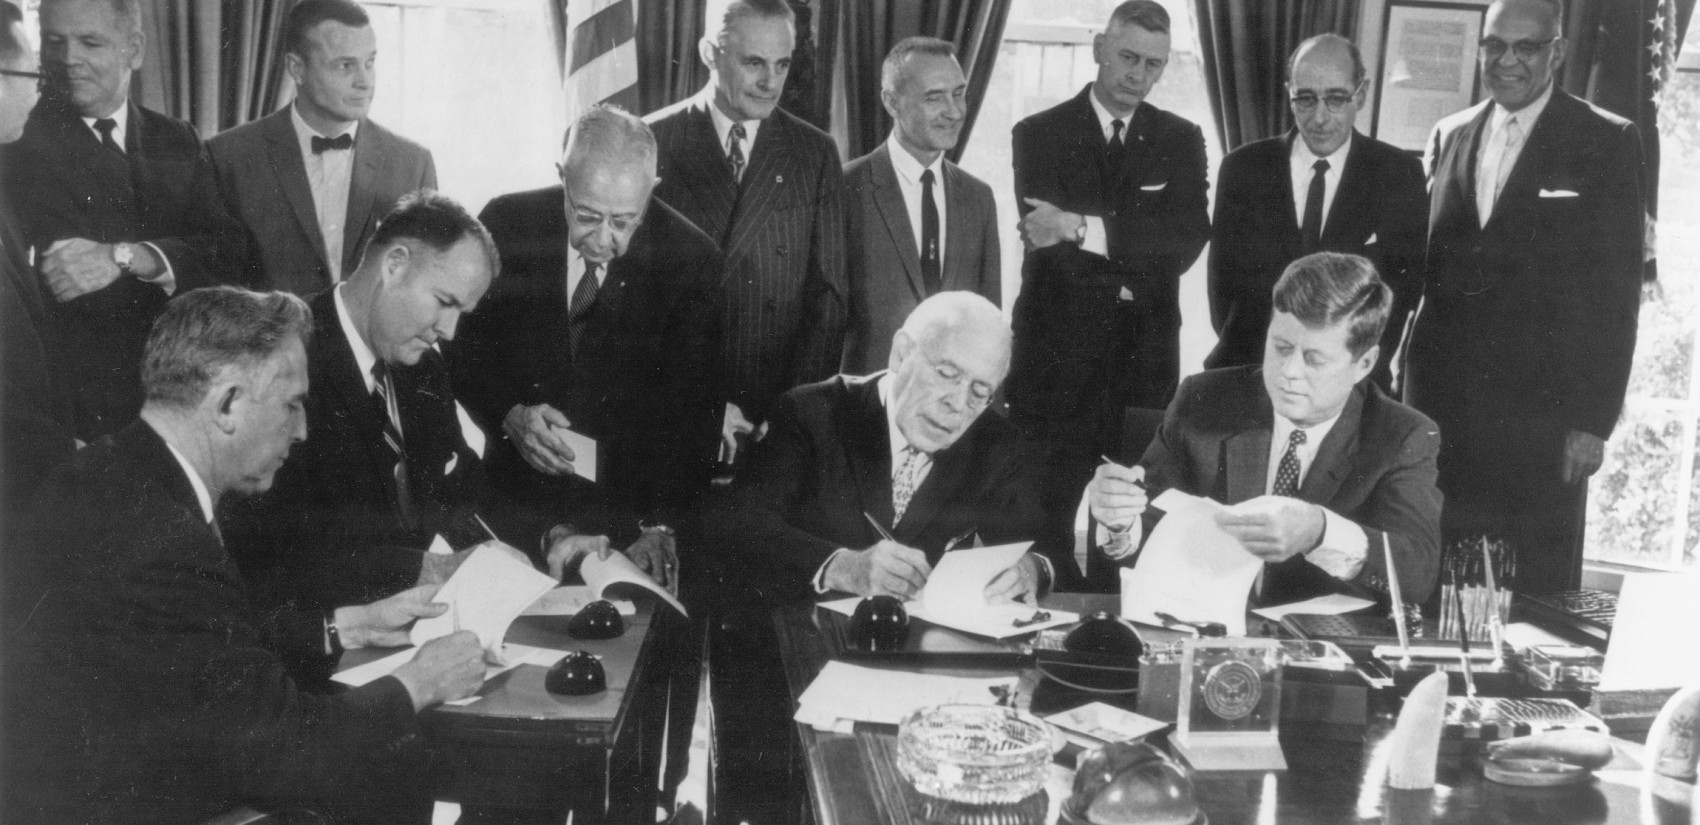 Governors Robert Meyner of New Jersey, Elbert Carvel of Delaware, and David Lawrence of Pennsylvania joined President John F. Kennedy at the White House on November 2, 1961, to participate in a ceremonial signing of the Delaware River Basin Compact. (DRBC)